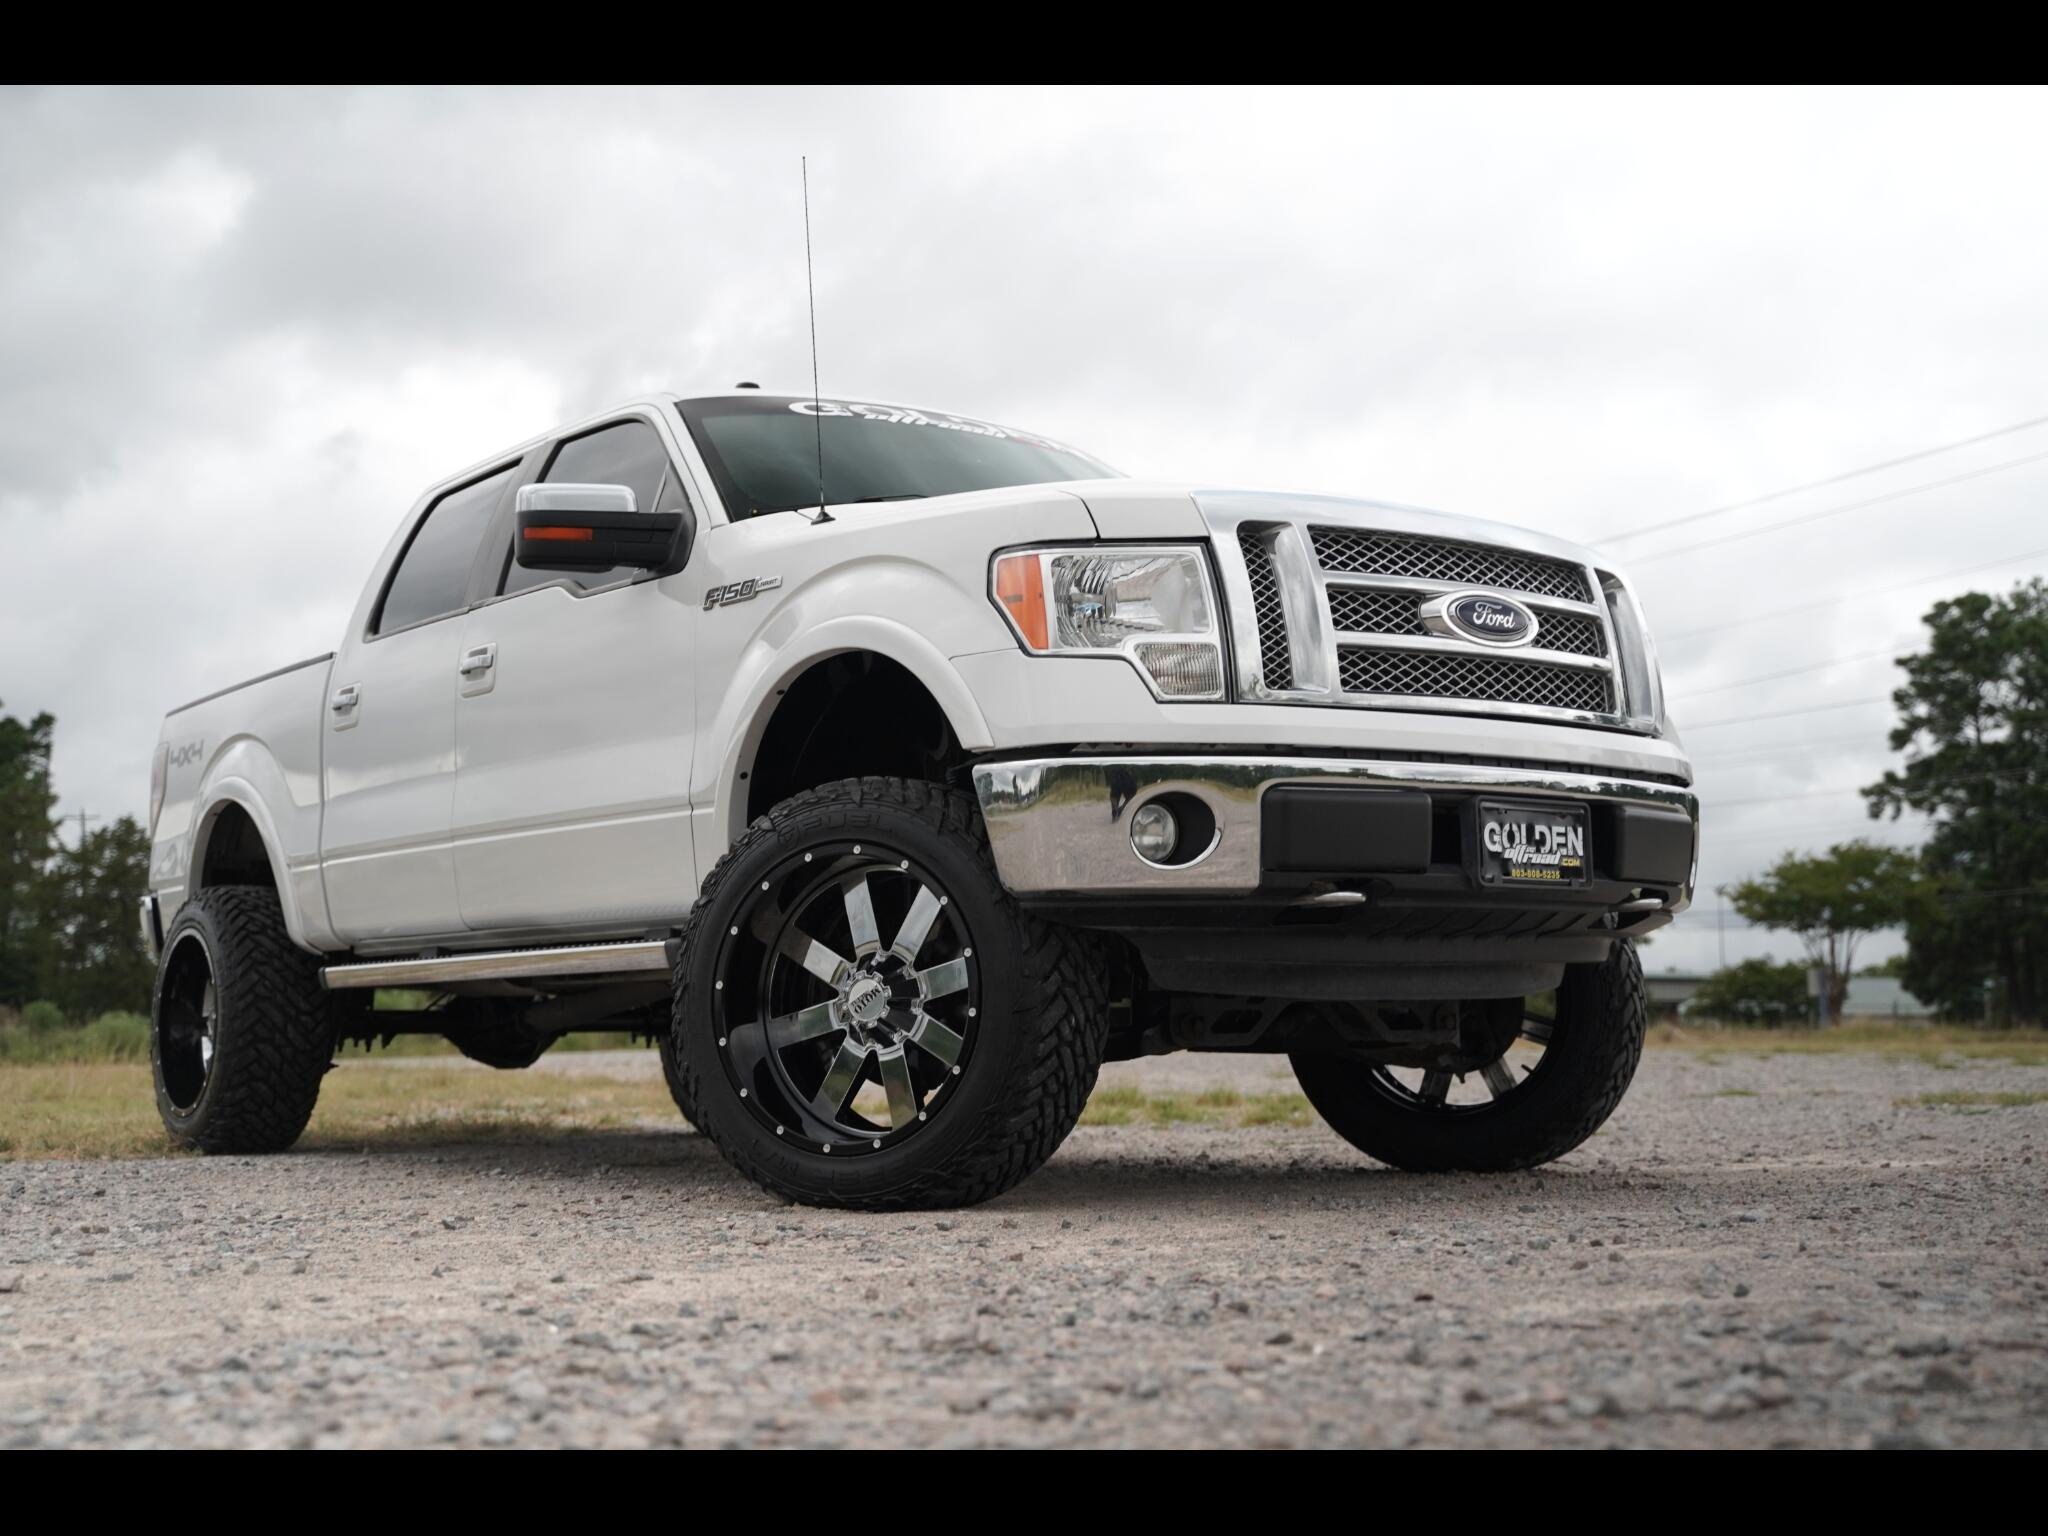 2011 Ford F-150 4WD Super Crew Lariat Lifted